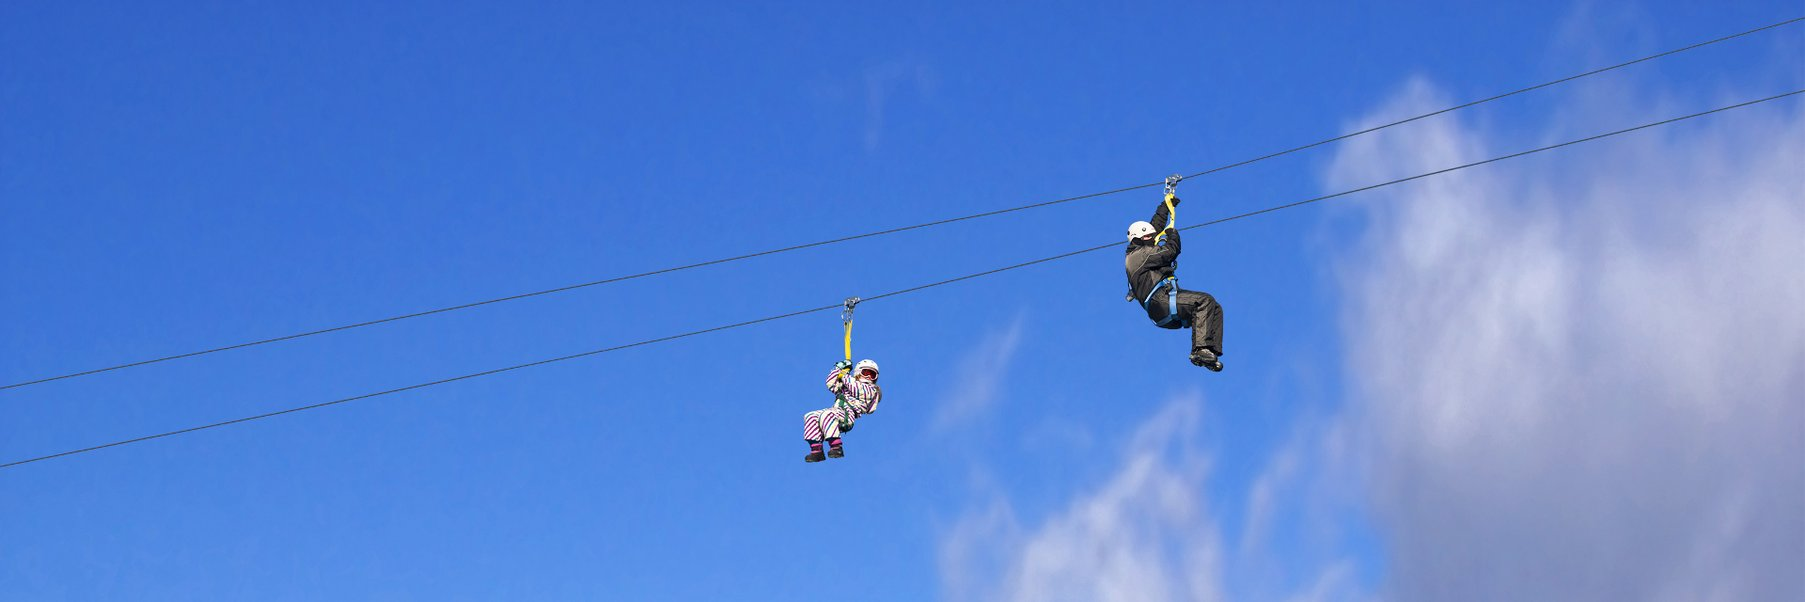 alpine_adventures_winter_zipline_white_mountains_homeslider.jpg